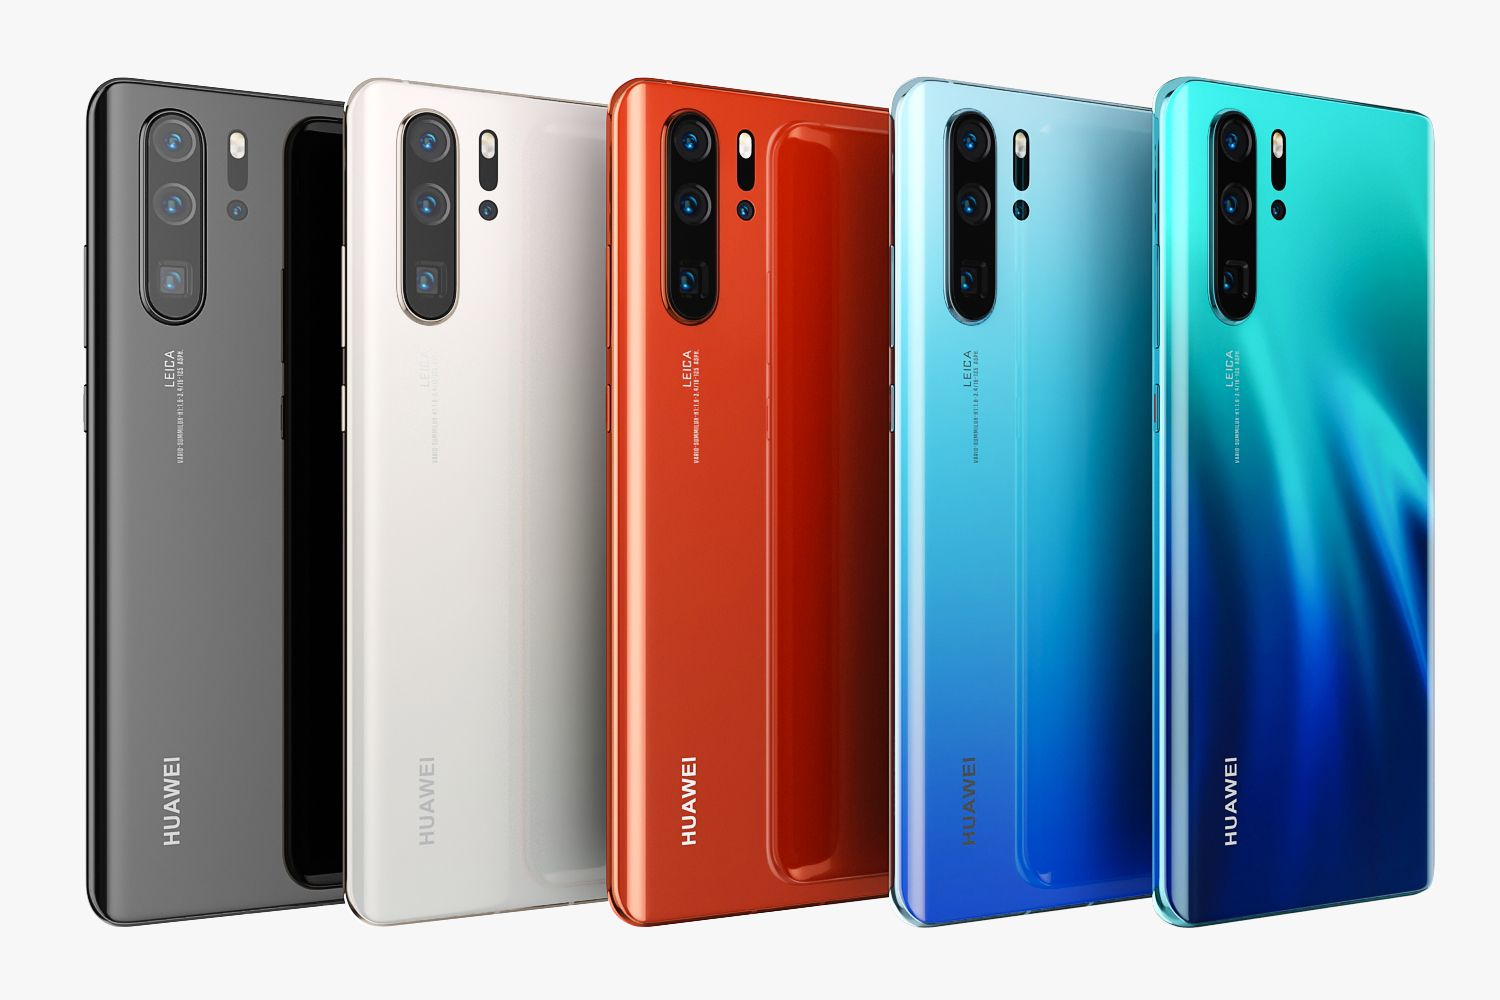 Huawei P30 Pro All Colors Ad Huawei Colors Pro